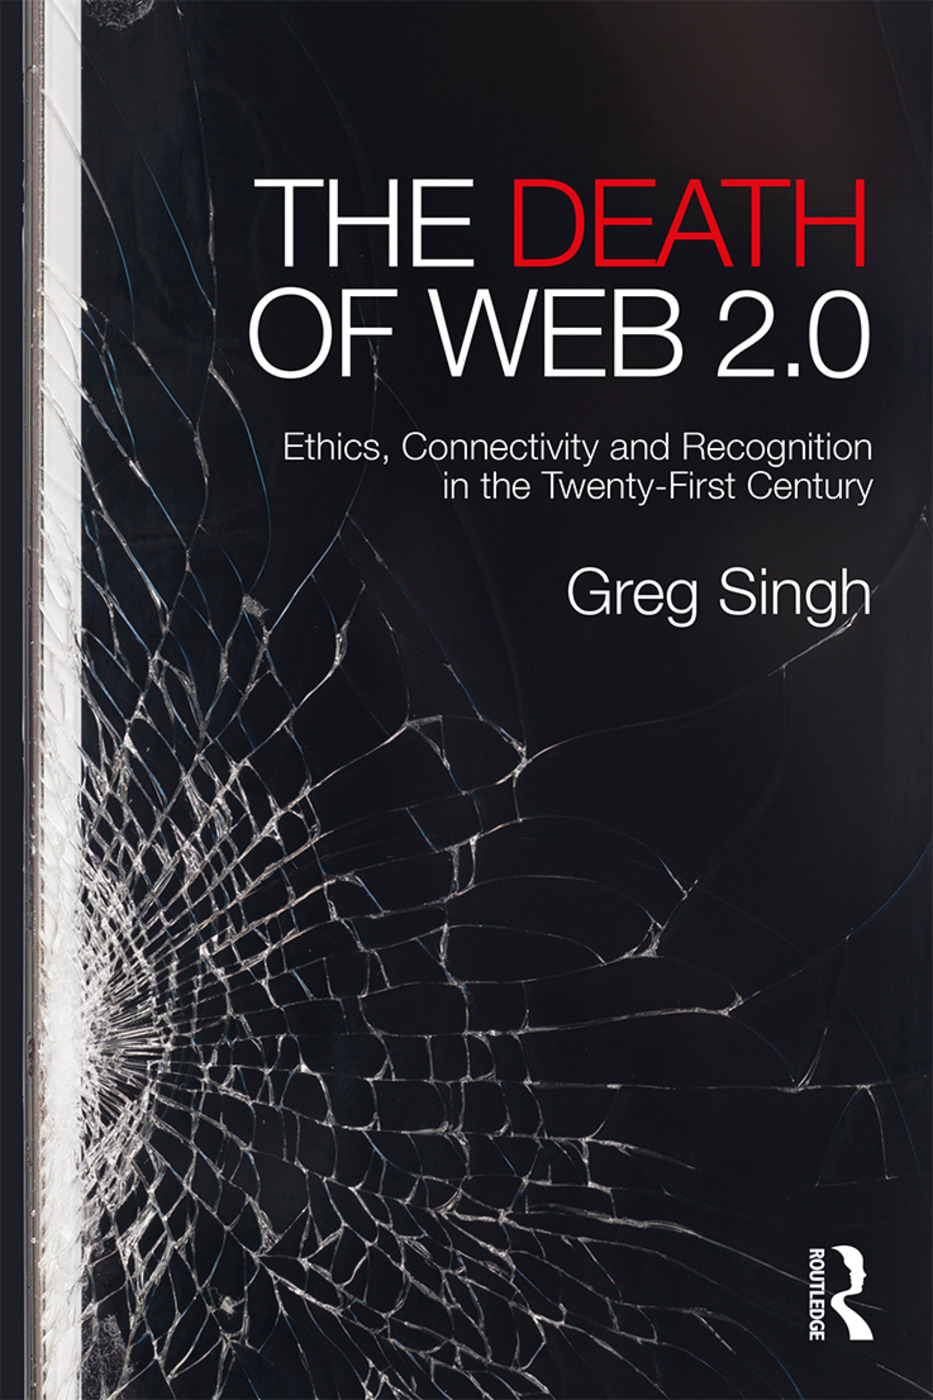 The Death of Web 2.0: Ethics, Connectivity and Recognition in the Twenty-First Century book cover